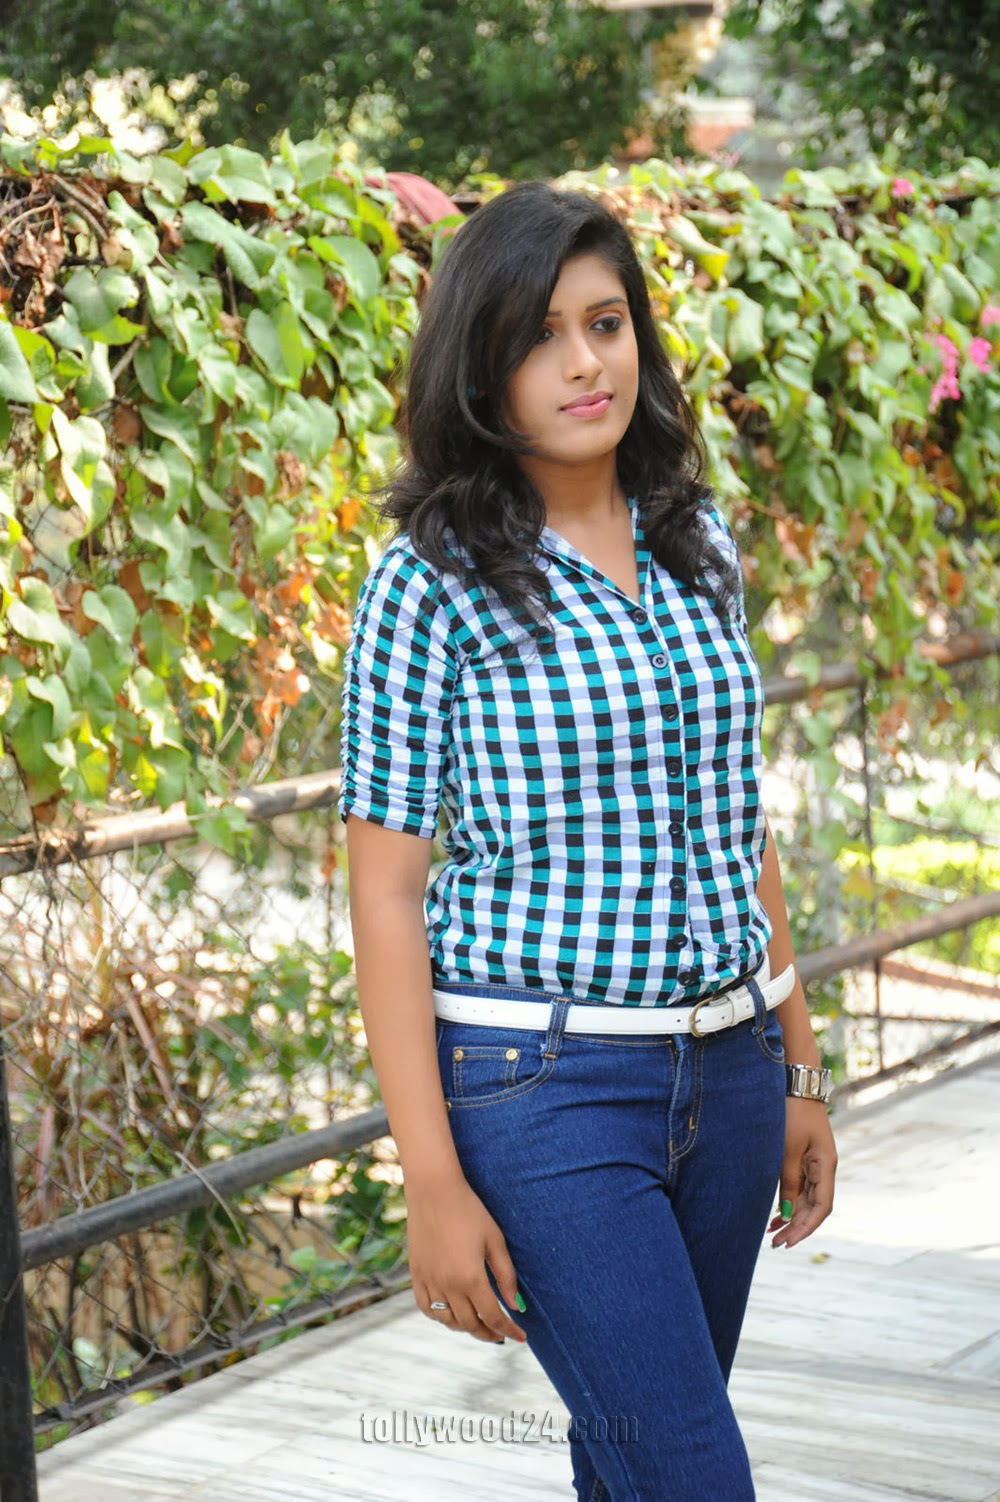 Liza reddy glam pix in jeans-HQ-Photo-1